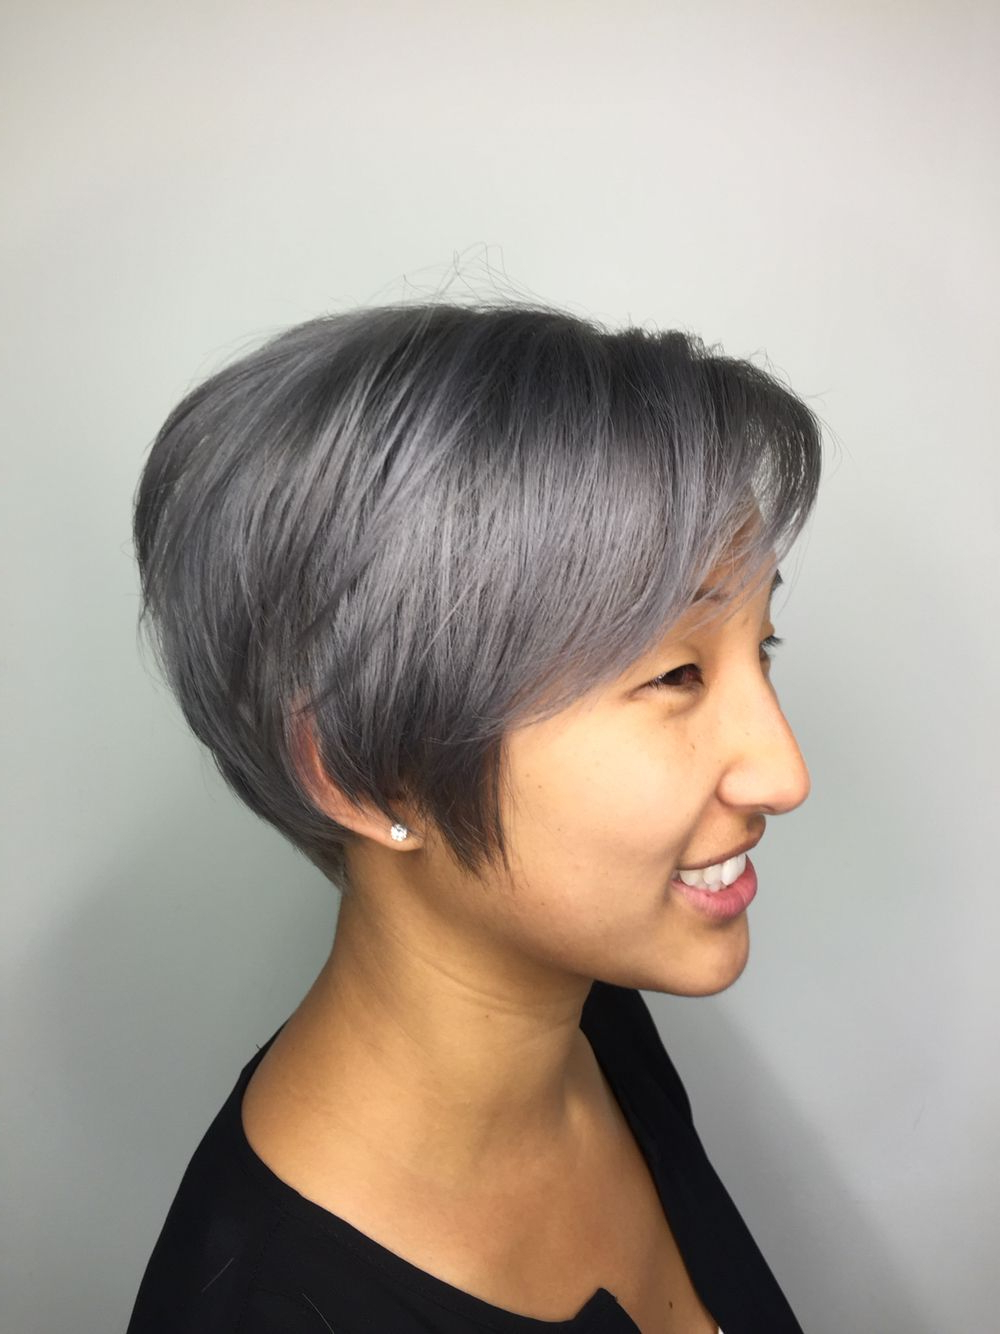 Pin On Pixie Hairstyles Regarding Newest High Pixie Asian Hairstyles (View 15 of 20)